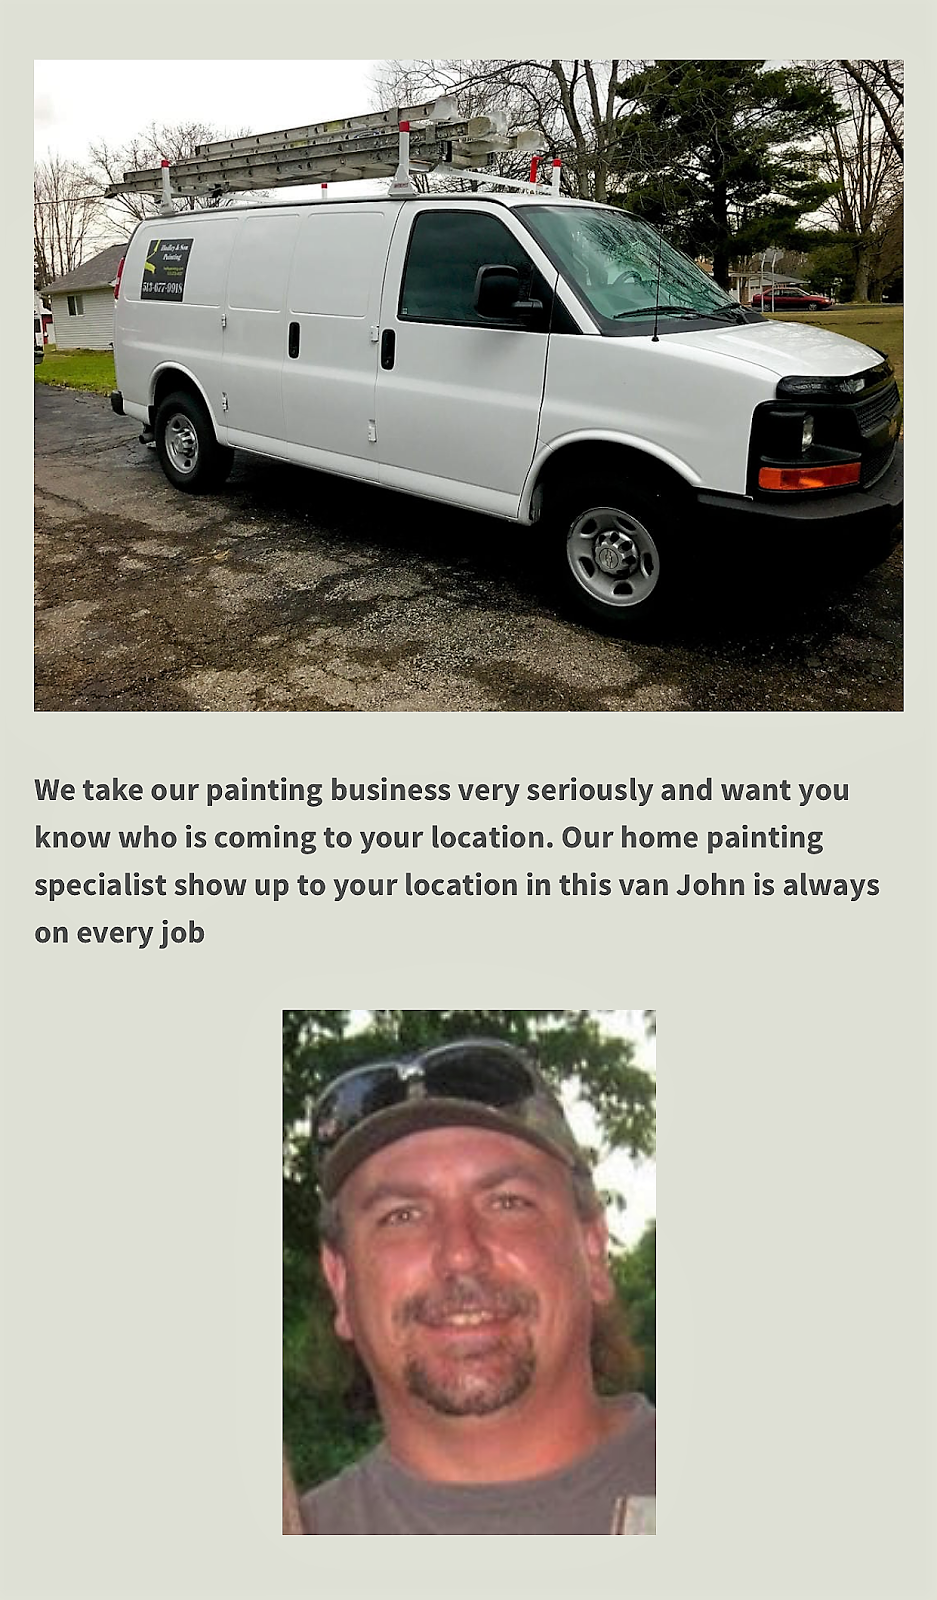 Know who is arriving for your painting estimates